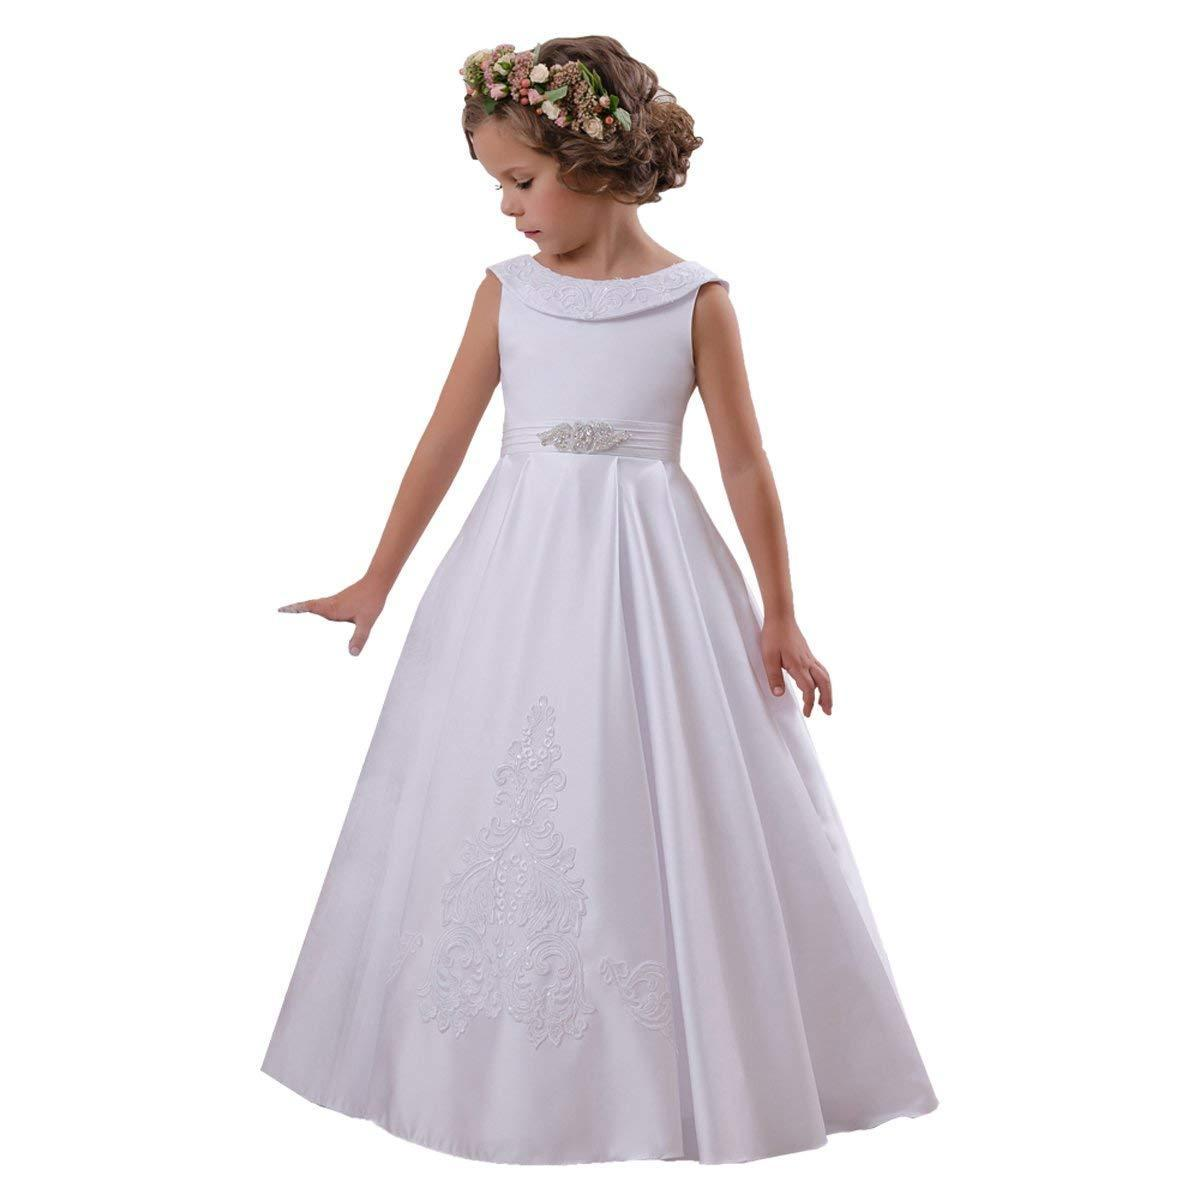 a00b5aa94b0 Elegant O Neck Flower Girl Dress Kids Dress Sleeveless A Line Stain Party  Wedding Dresses For Girls 2 14 Year Old Girls Ivory Shoes Girlsdresses From  Fbdh05 ...